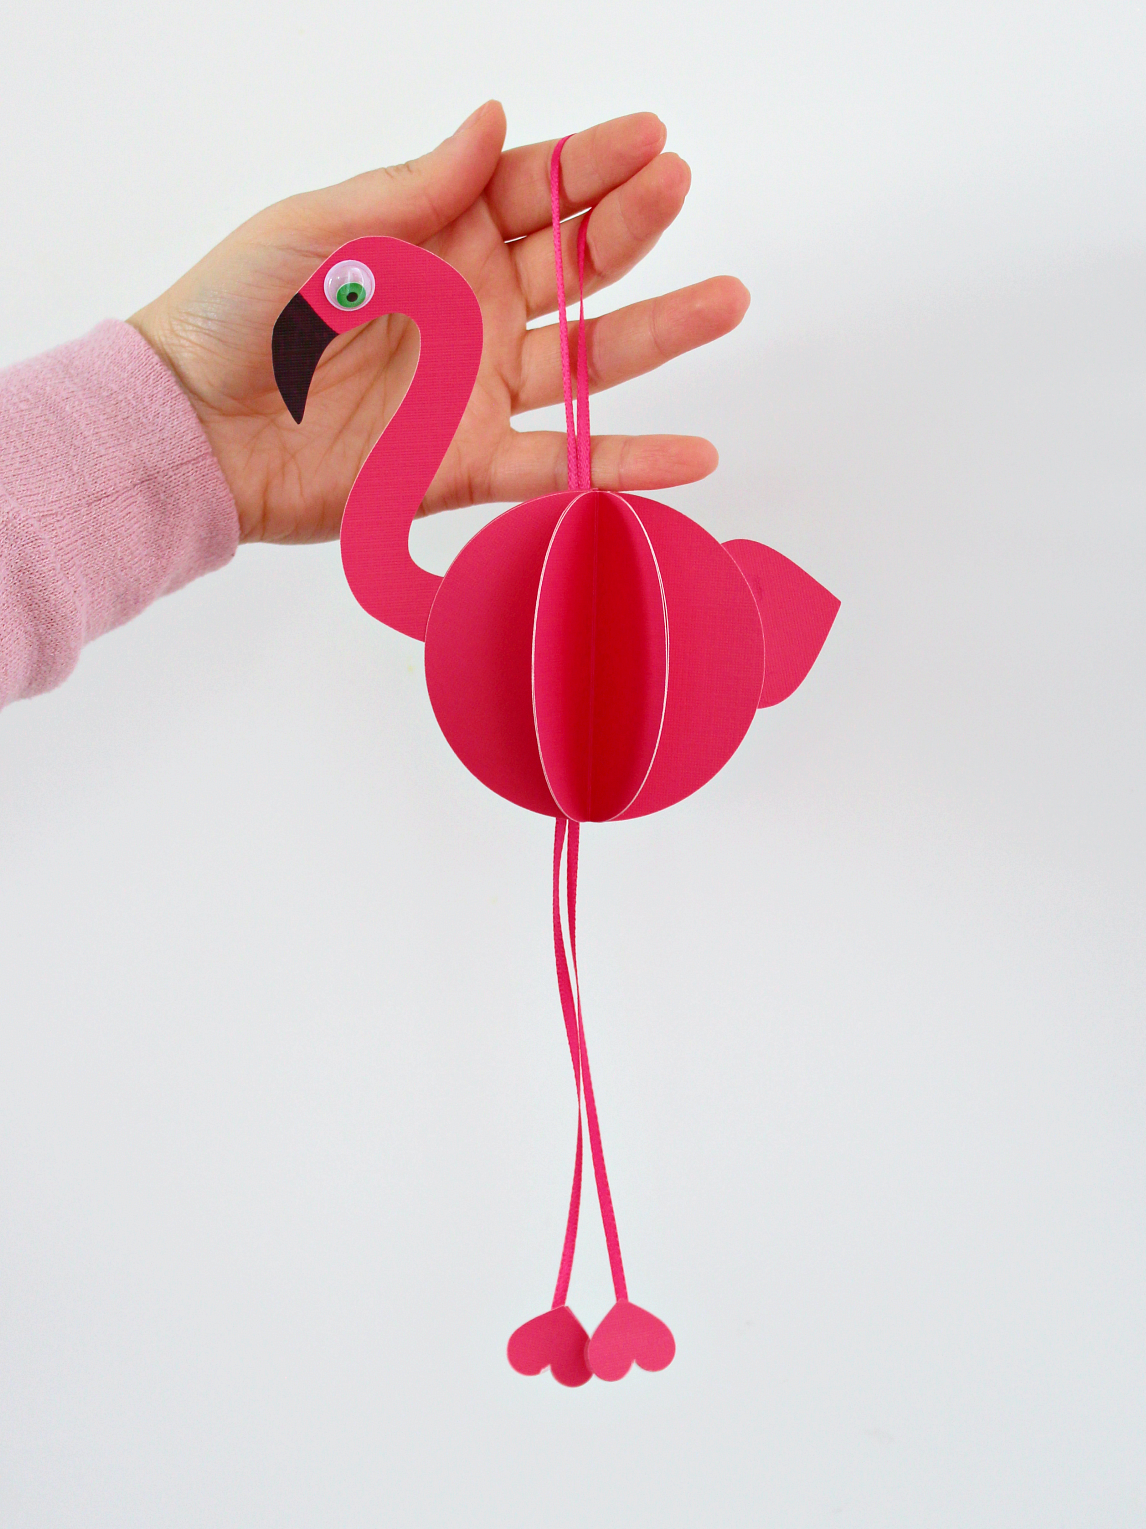 3D PAPER FLAMINGO ORNAMENTS (WITH FREE CUT FILE)